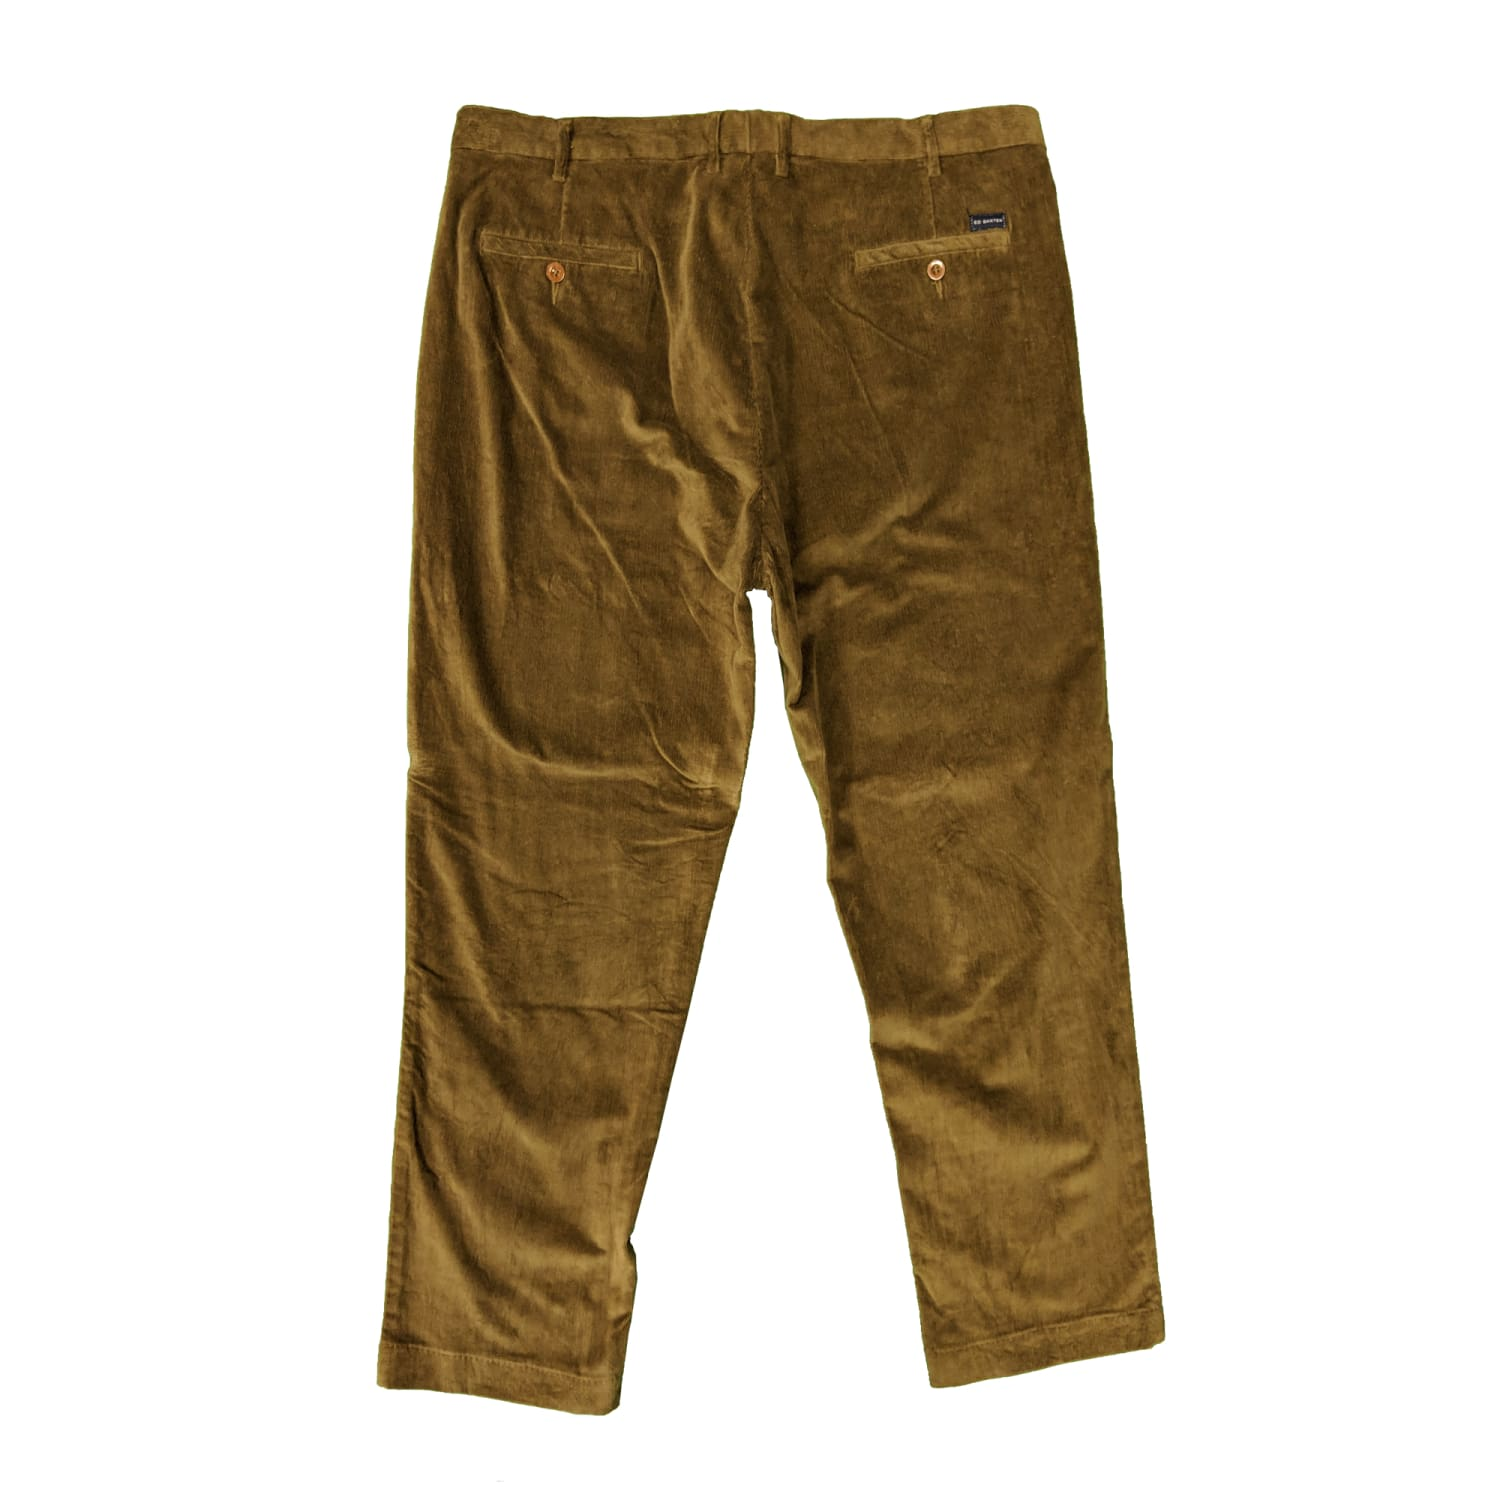 Ed Baxter Stretch Cords - EB222 - Olive 1